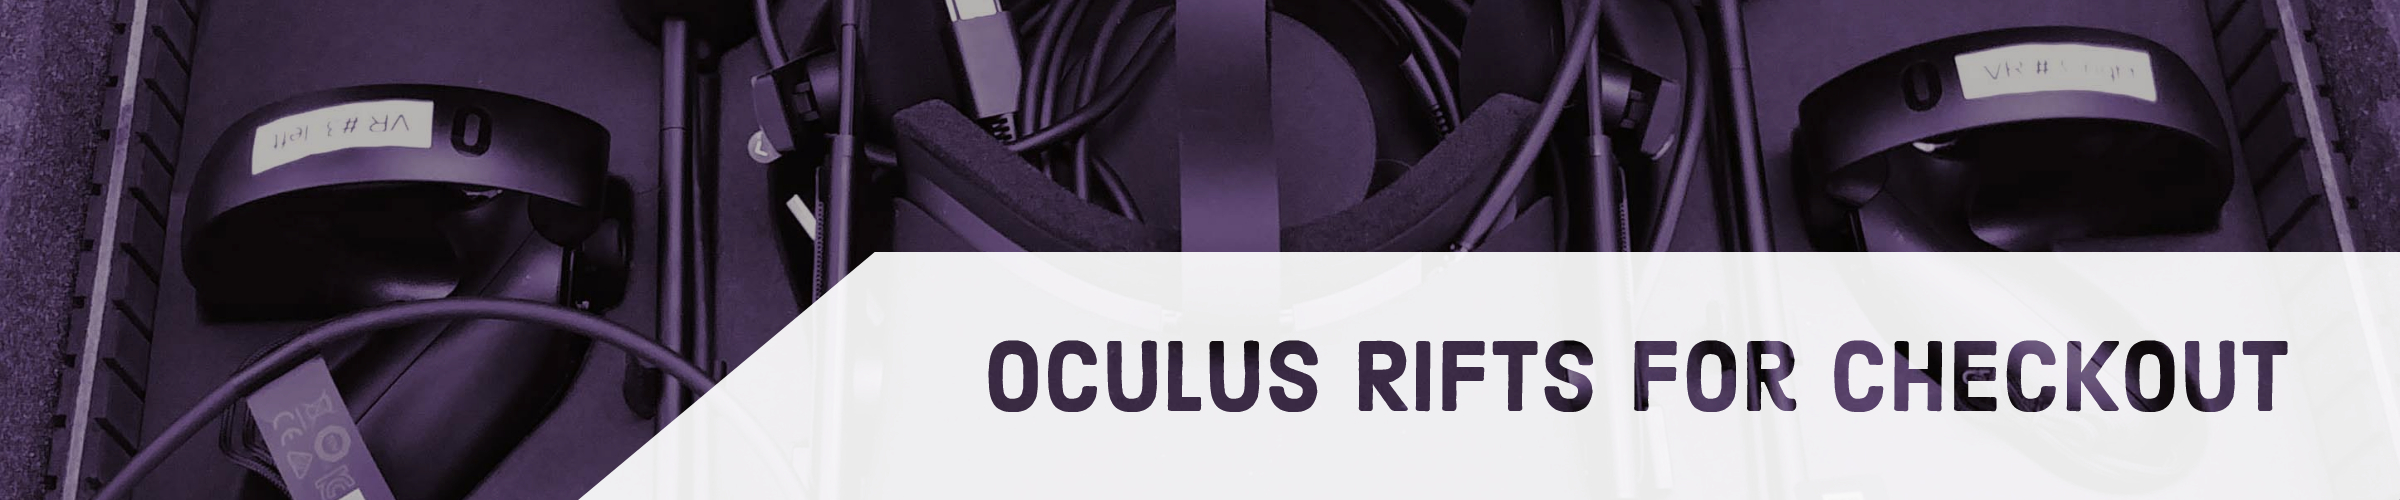 Oculus Rifts for Checkout